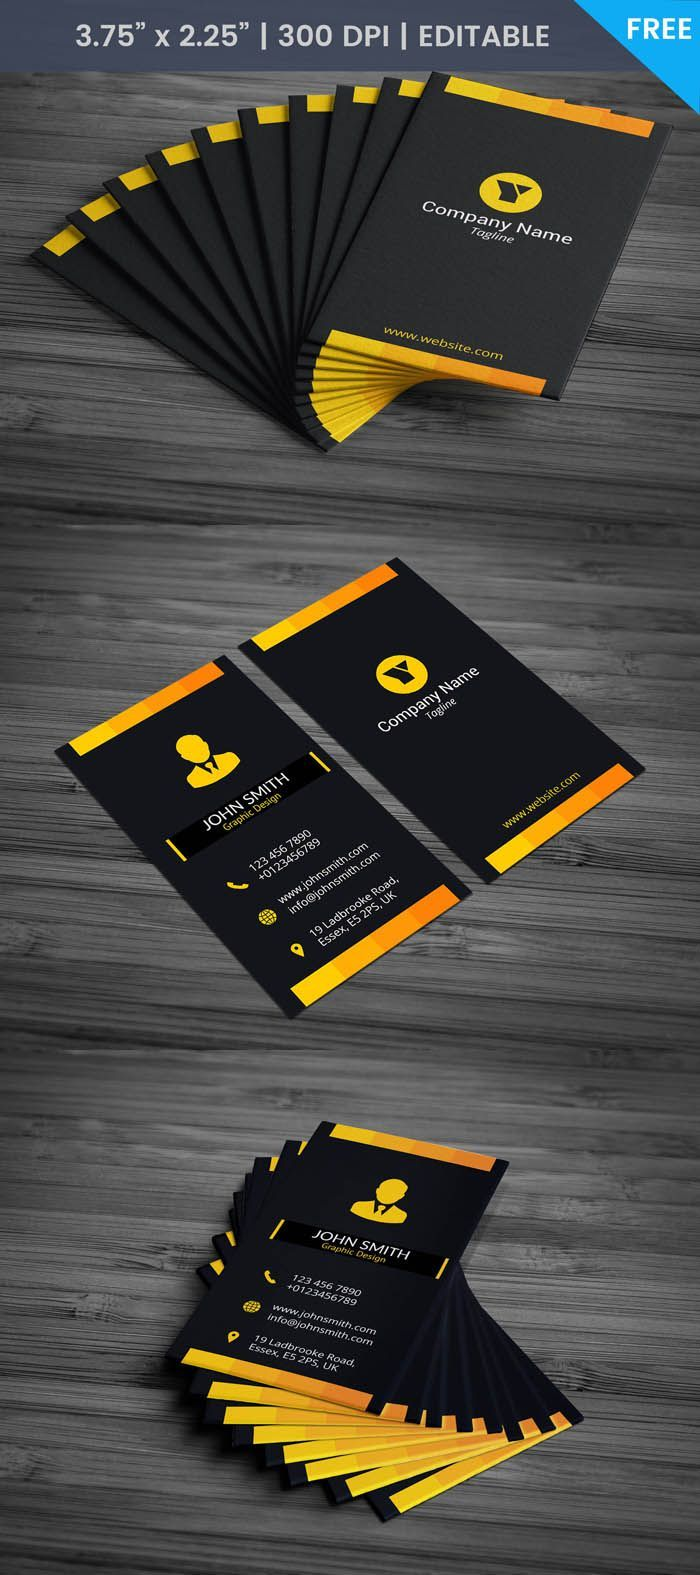 Free Yellow Black Business Card Template Businesscardsonline Free Business Card Templates Business Cards Online Square Business Cards